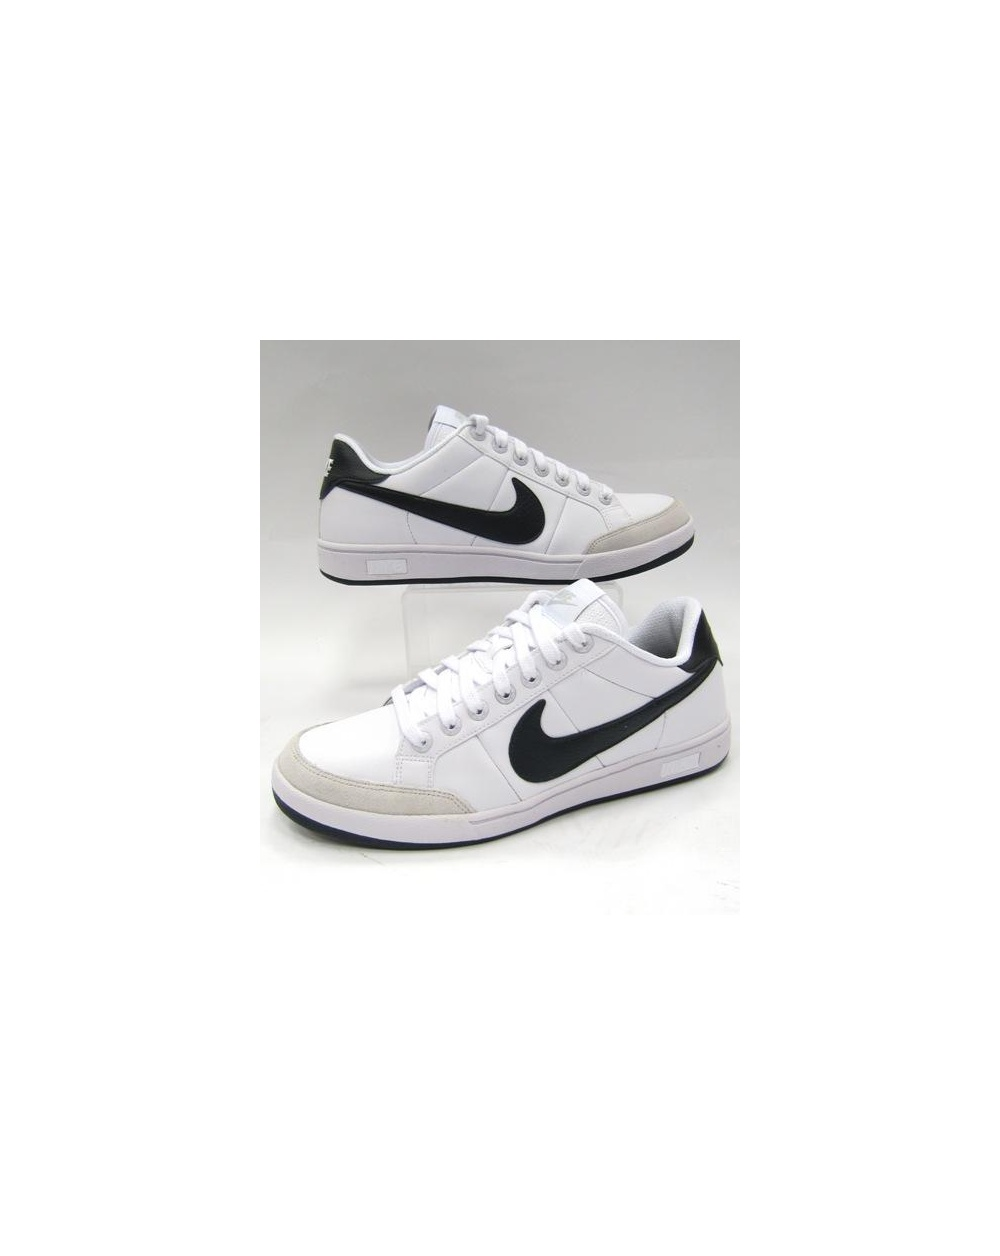 Buy Nike Shoes Now Pay Later